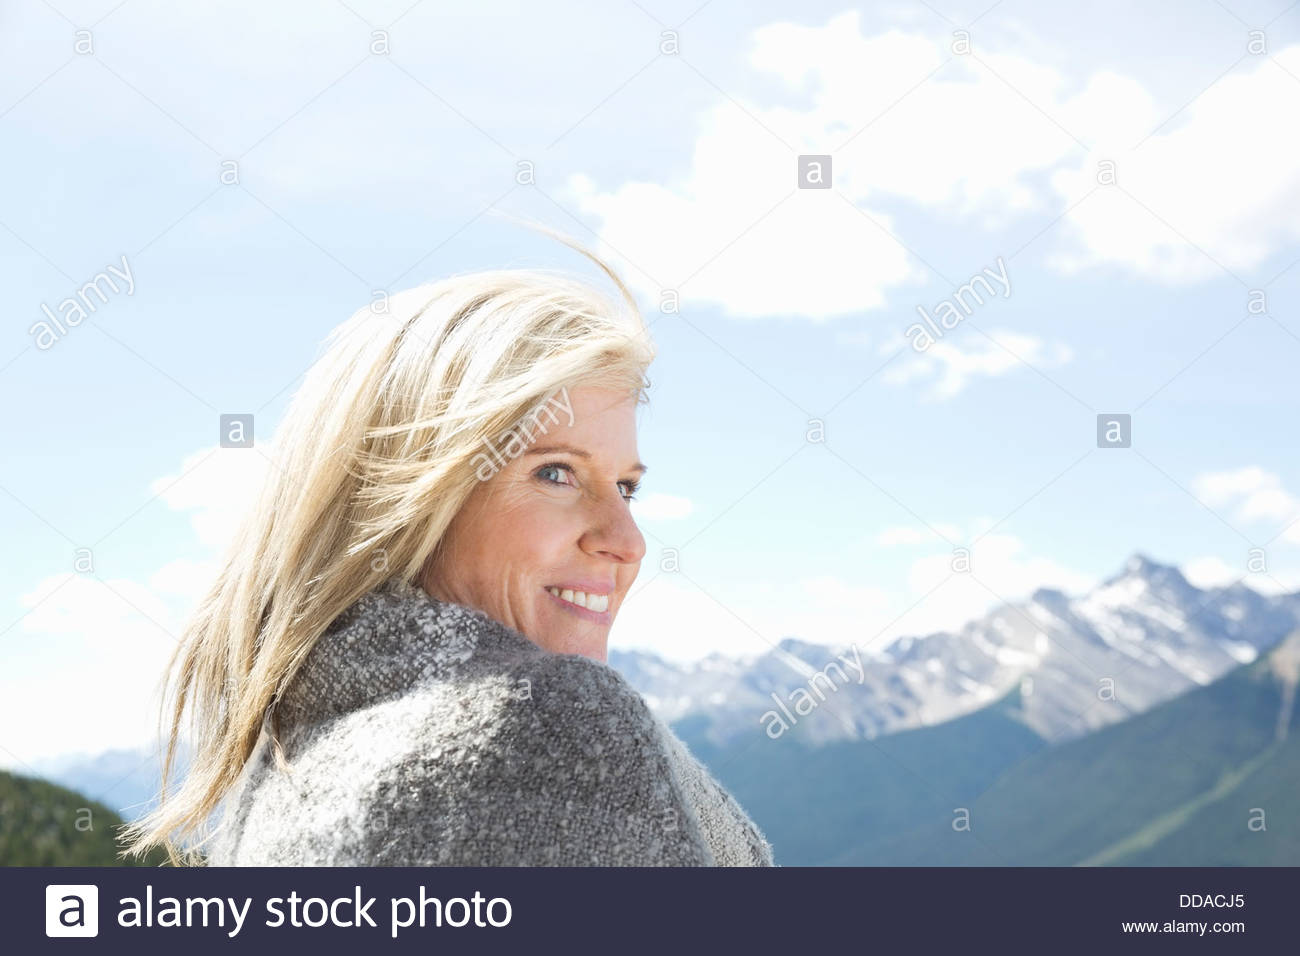 Woman wrapped in blanket contre montagne Photo Stock